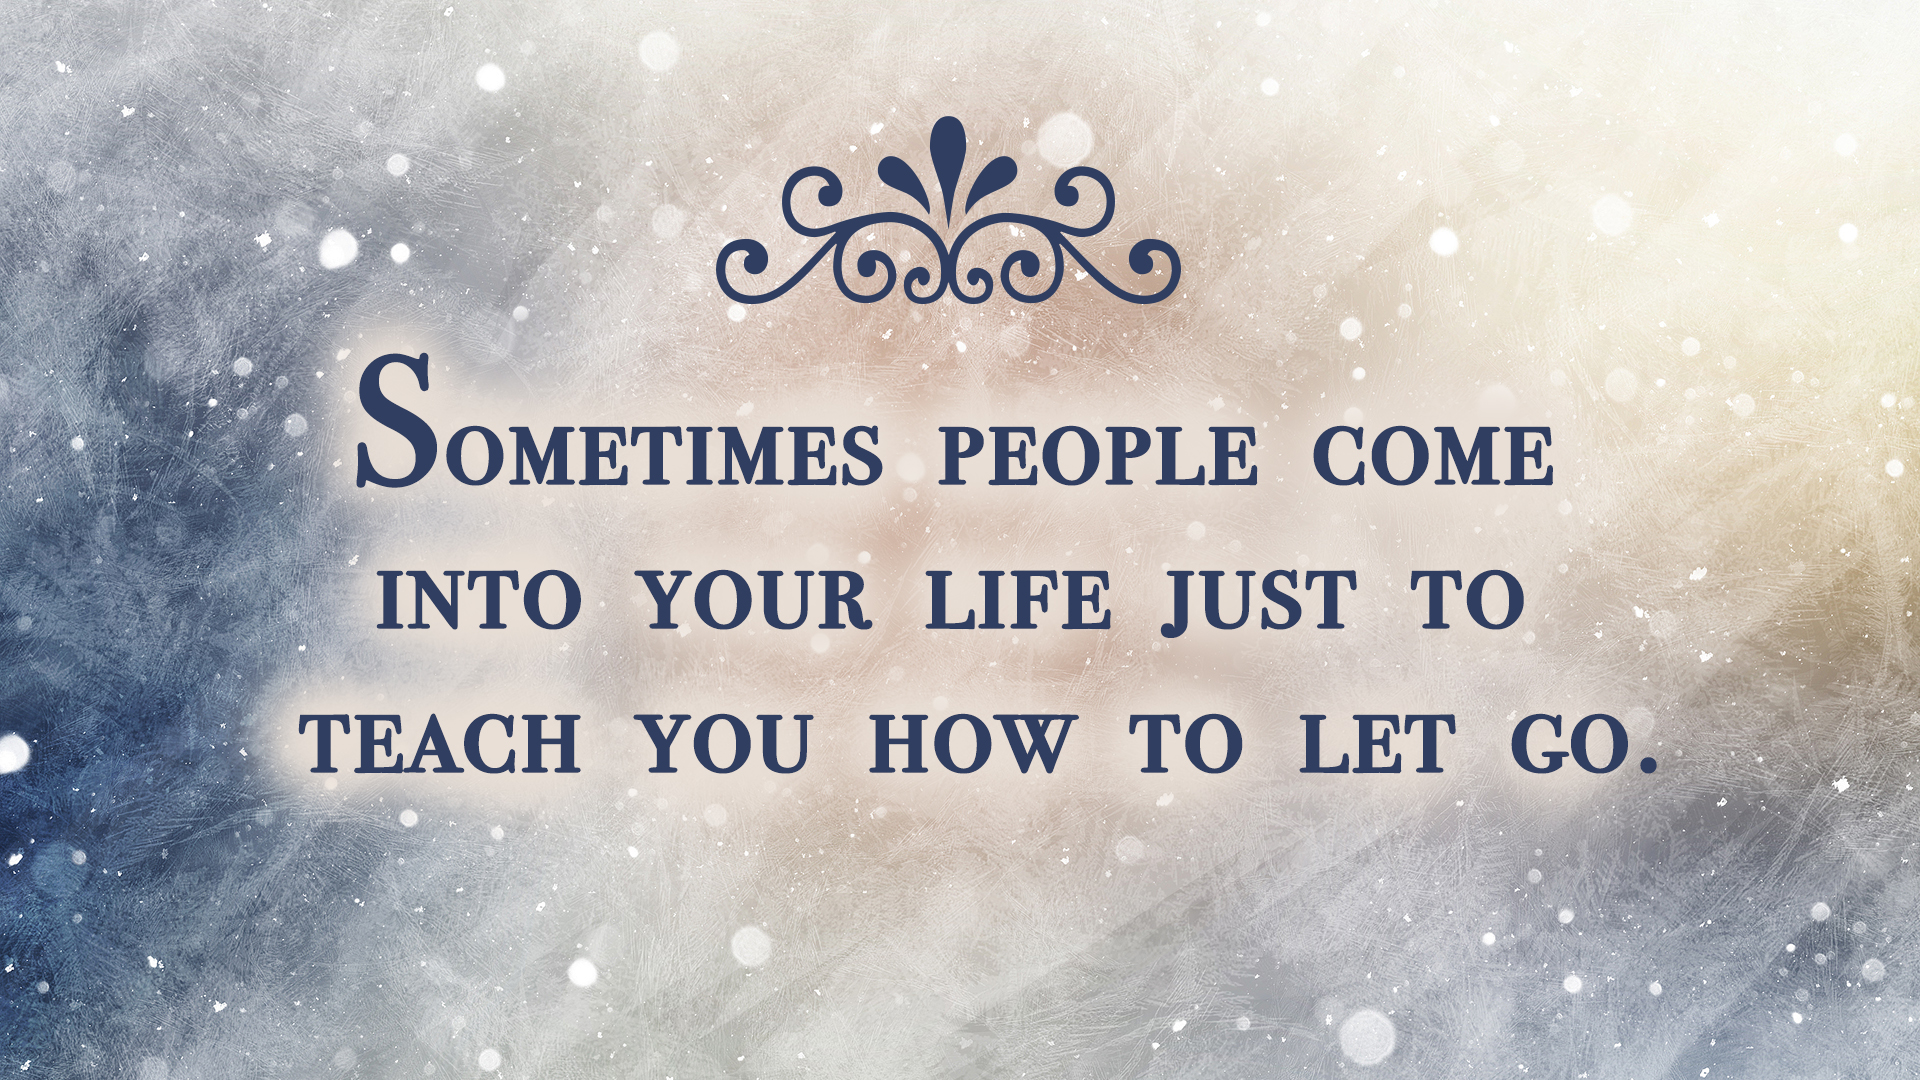 Just Live Life Quotes 35 Letting Go Quotes That Inspires You To Move On